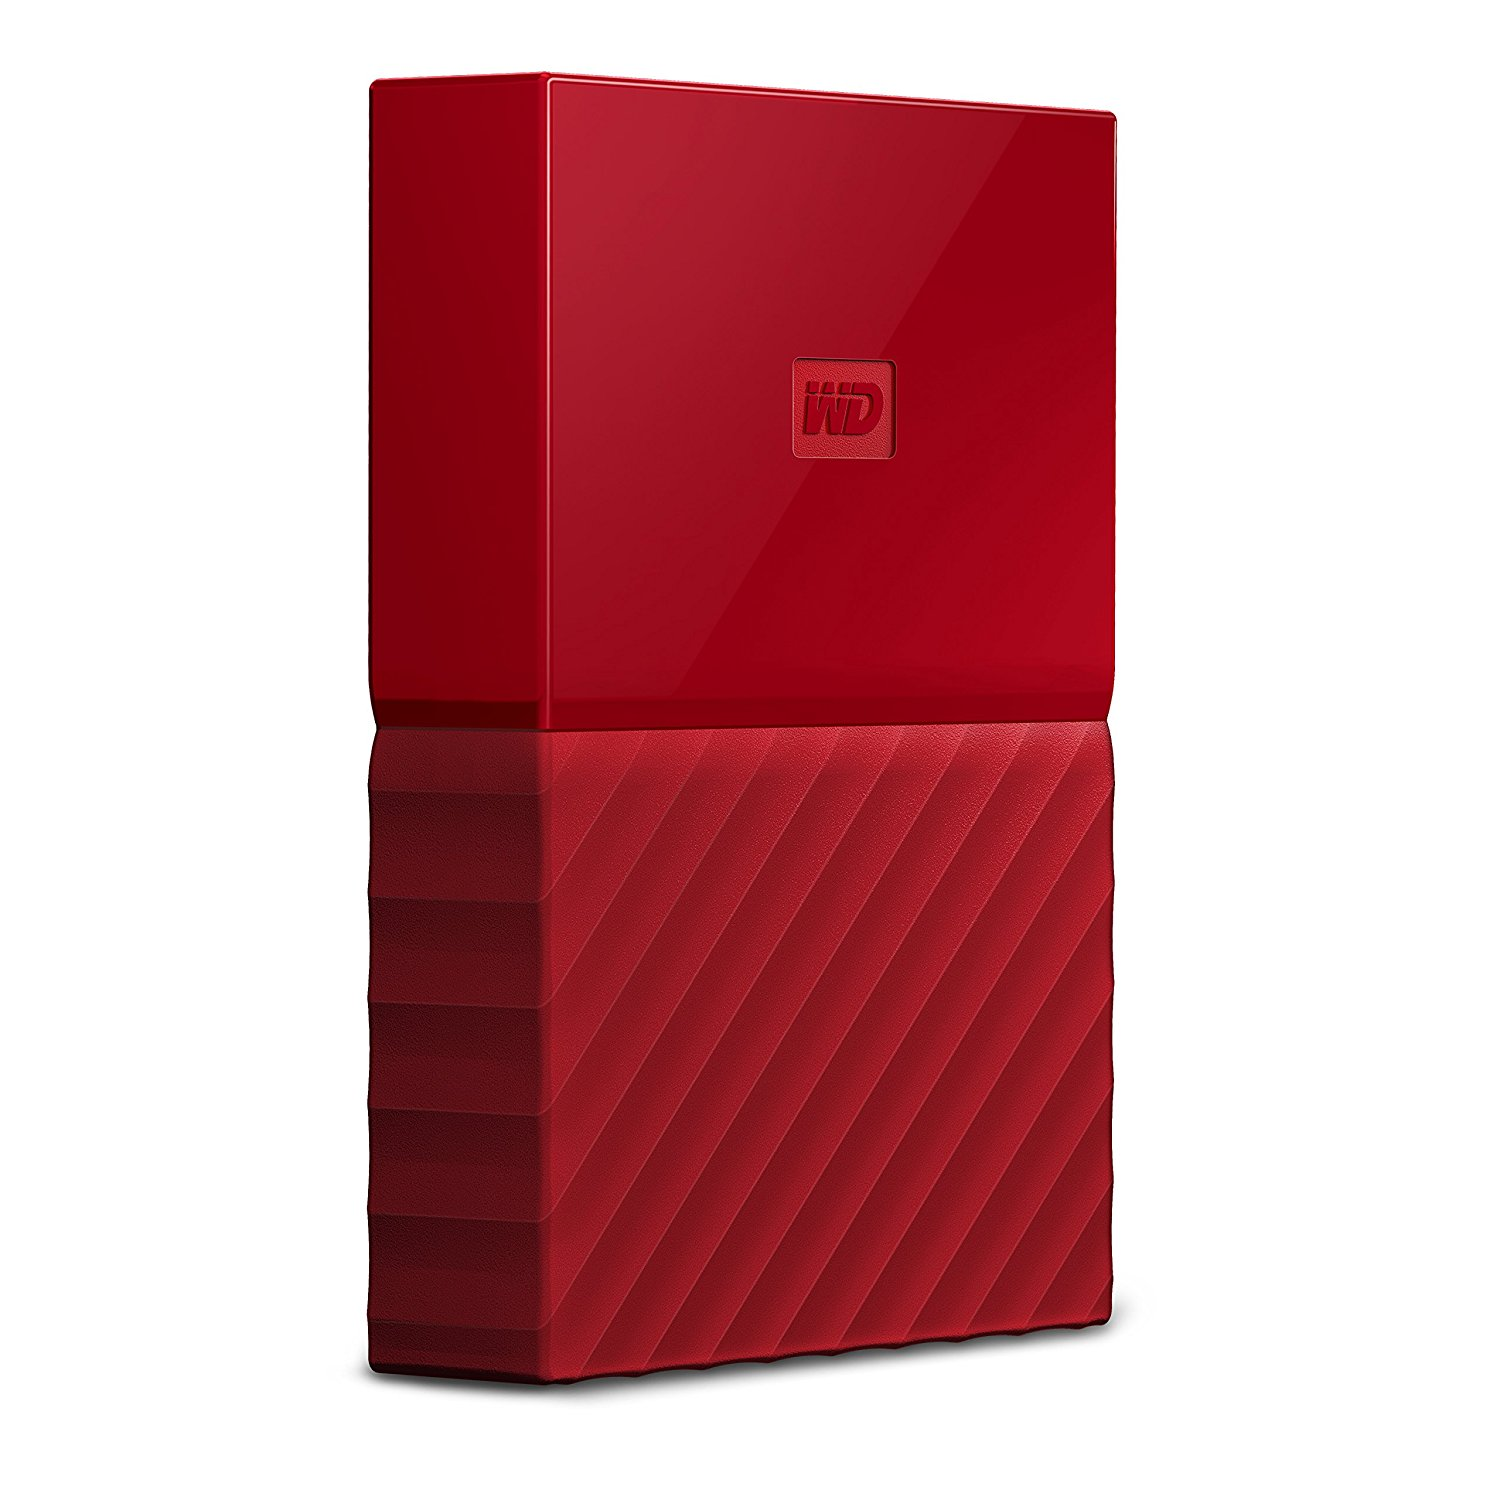 Hard Disk Extern Western Digital My Passport 4TB USB 3.0 Red